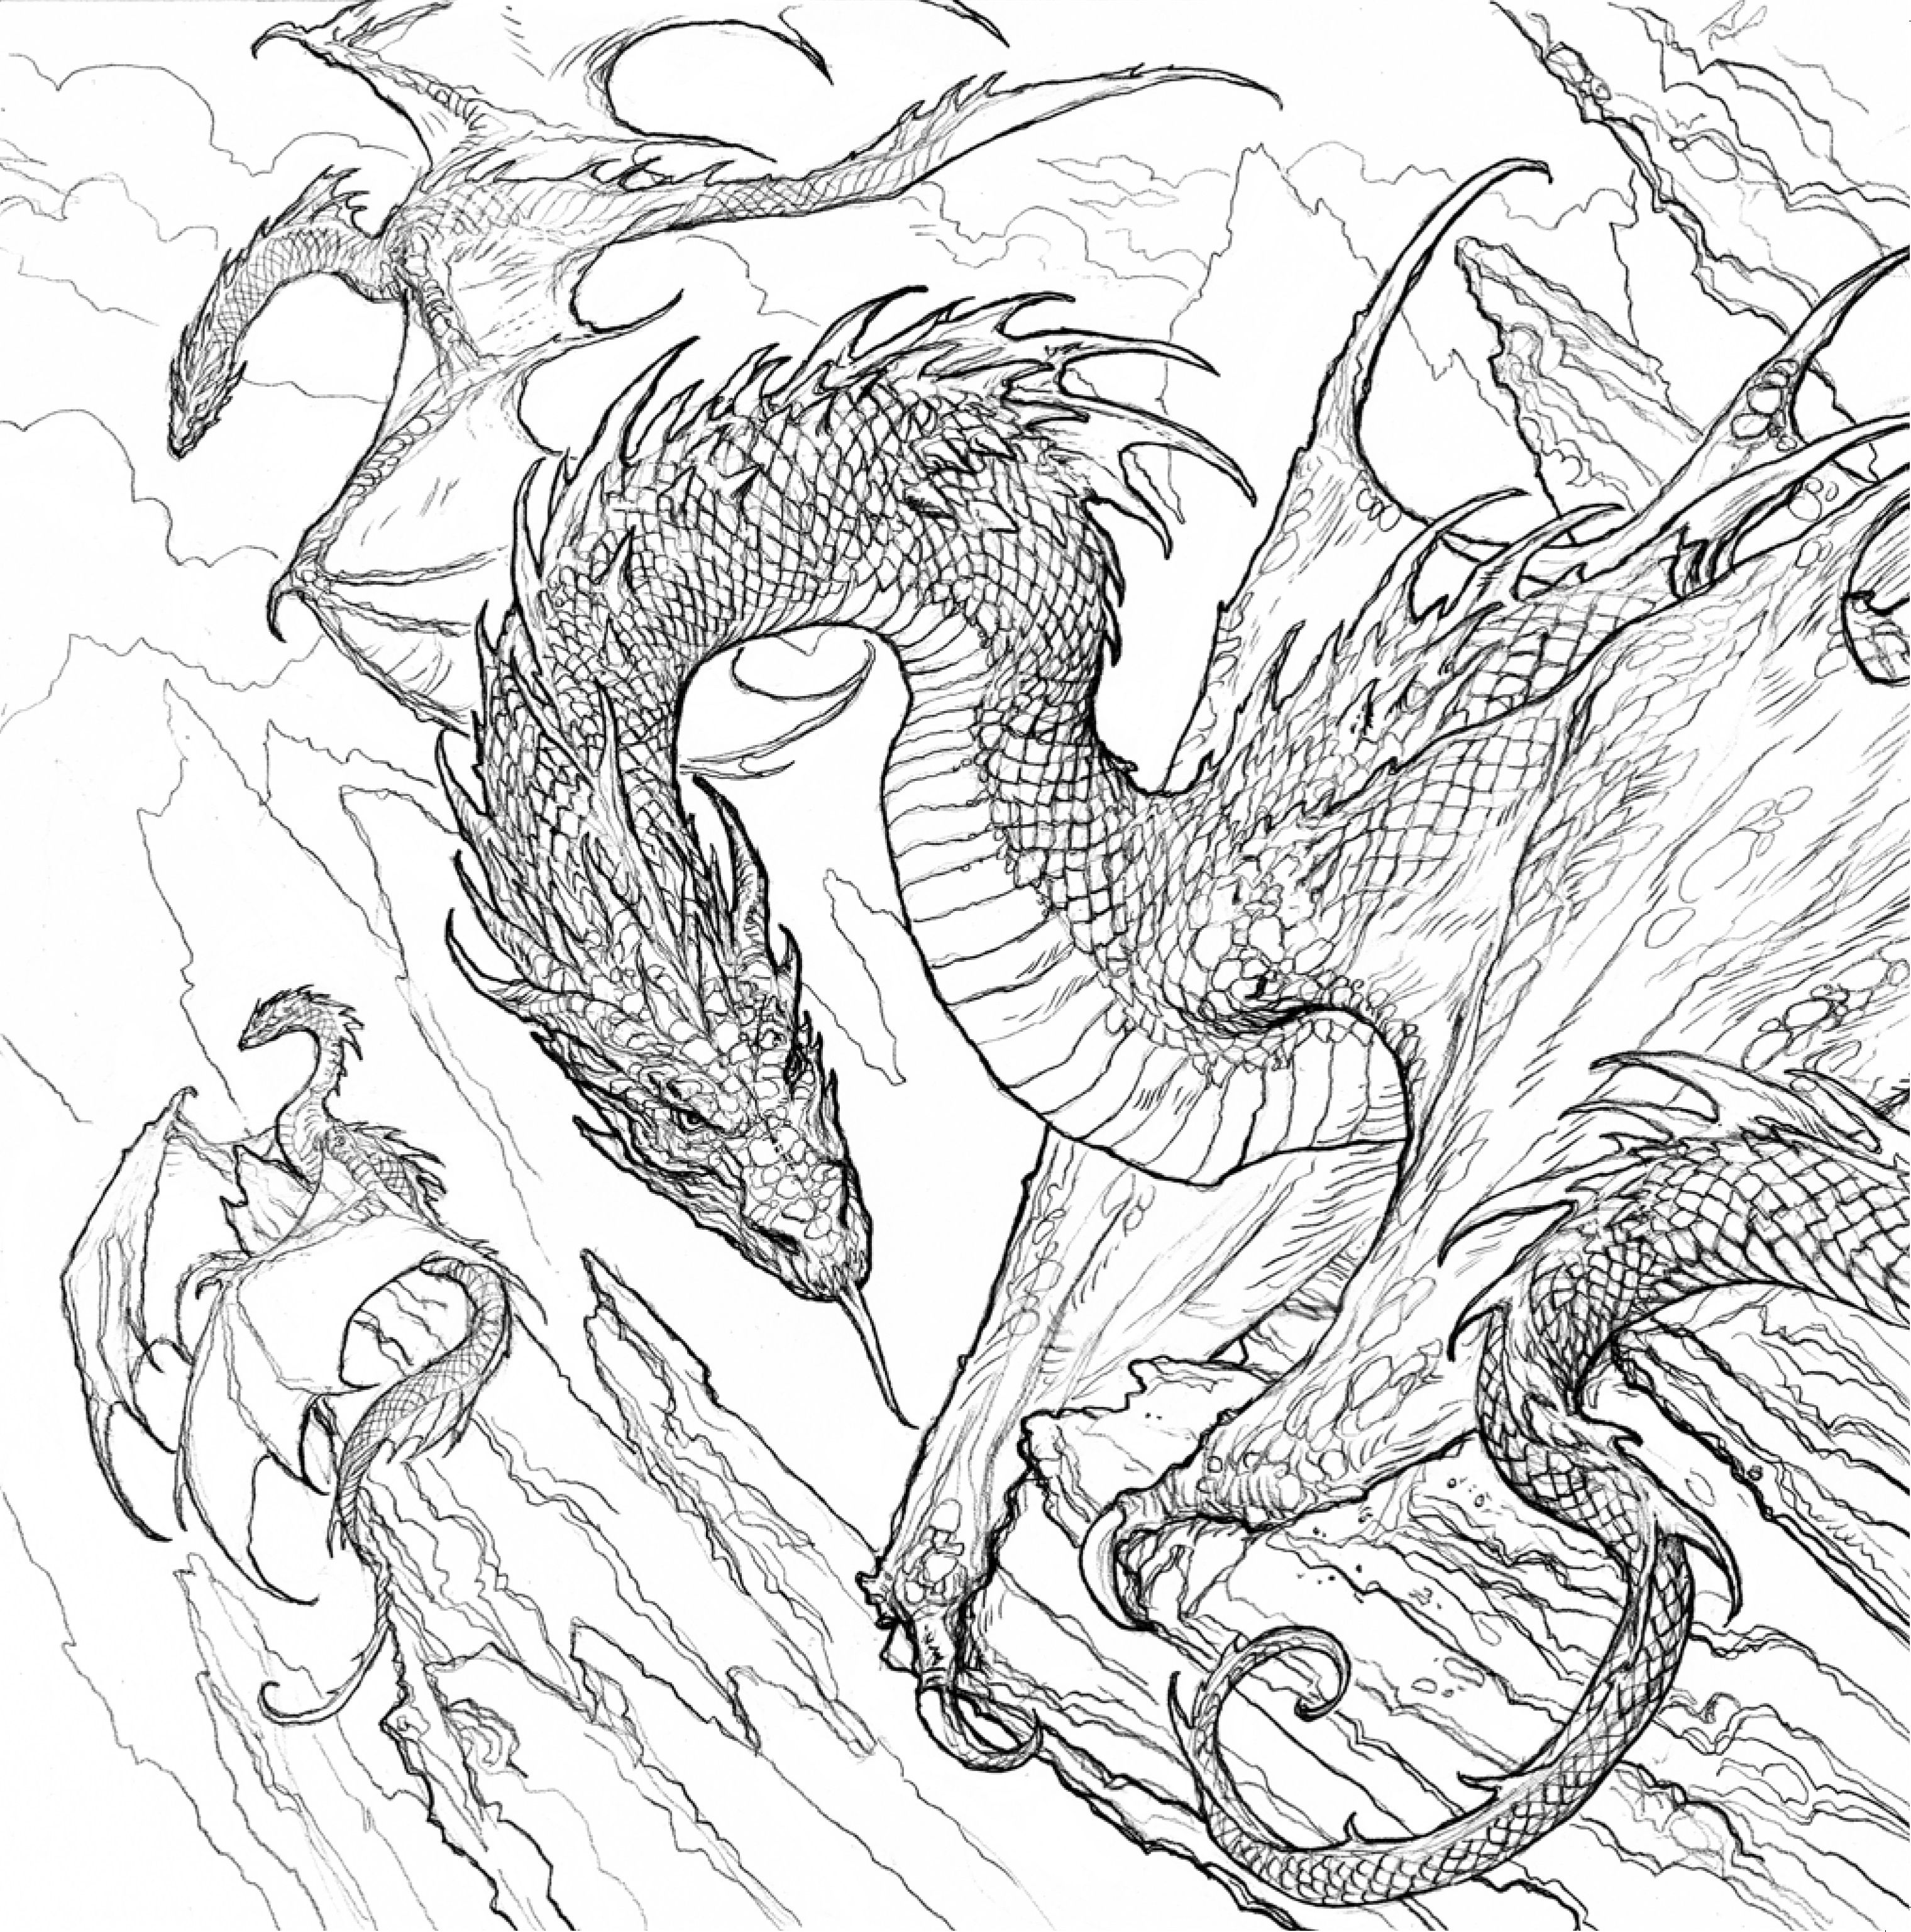 game of thrones and outlander coloring books see a sneak peek - Drawing Colour Games